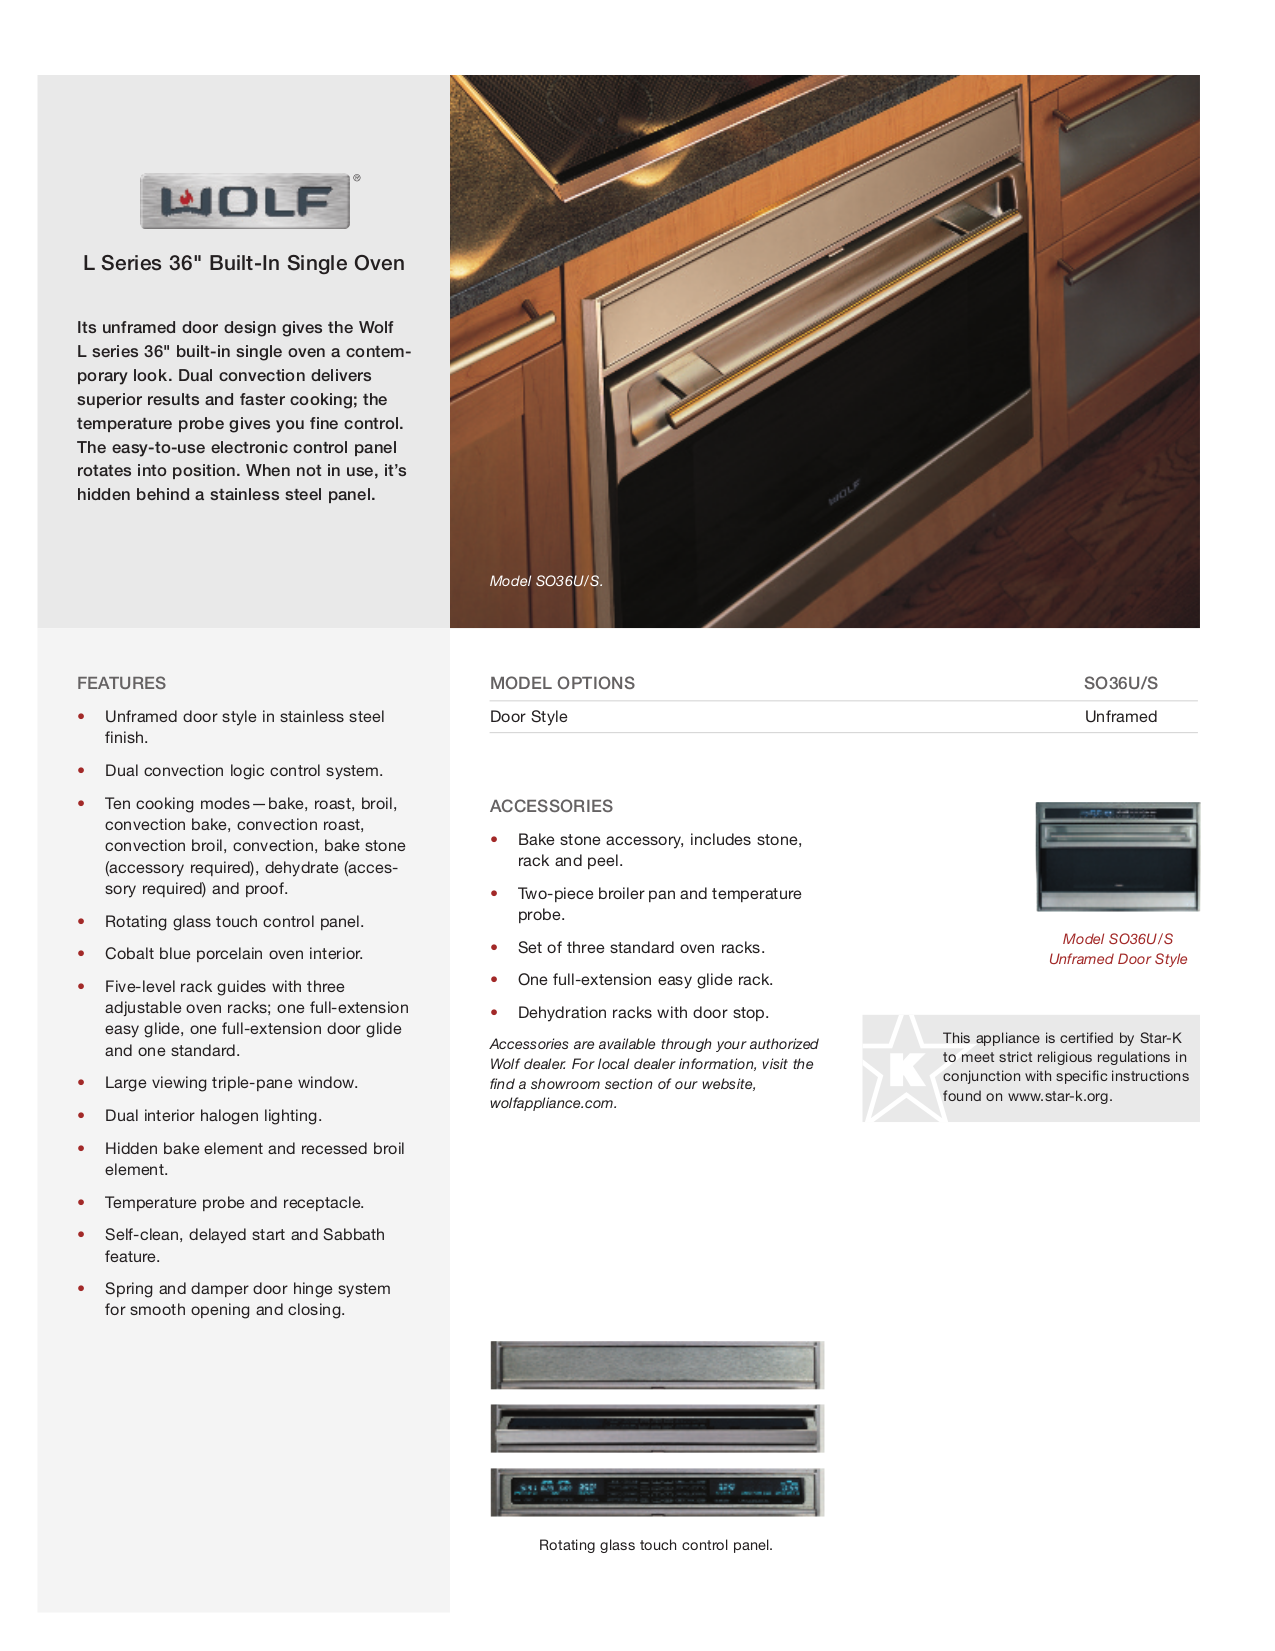 pdf for Wolf Oven L Series SO36U manual